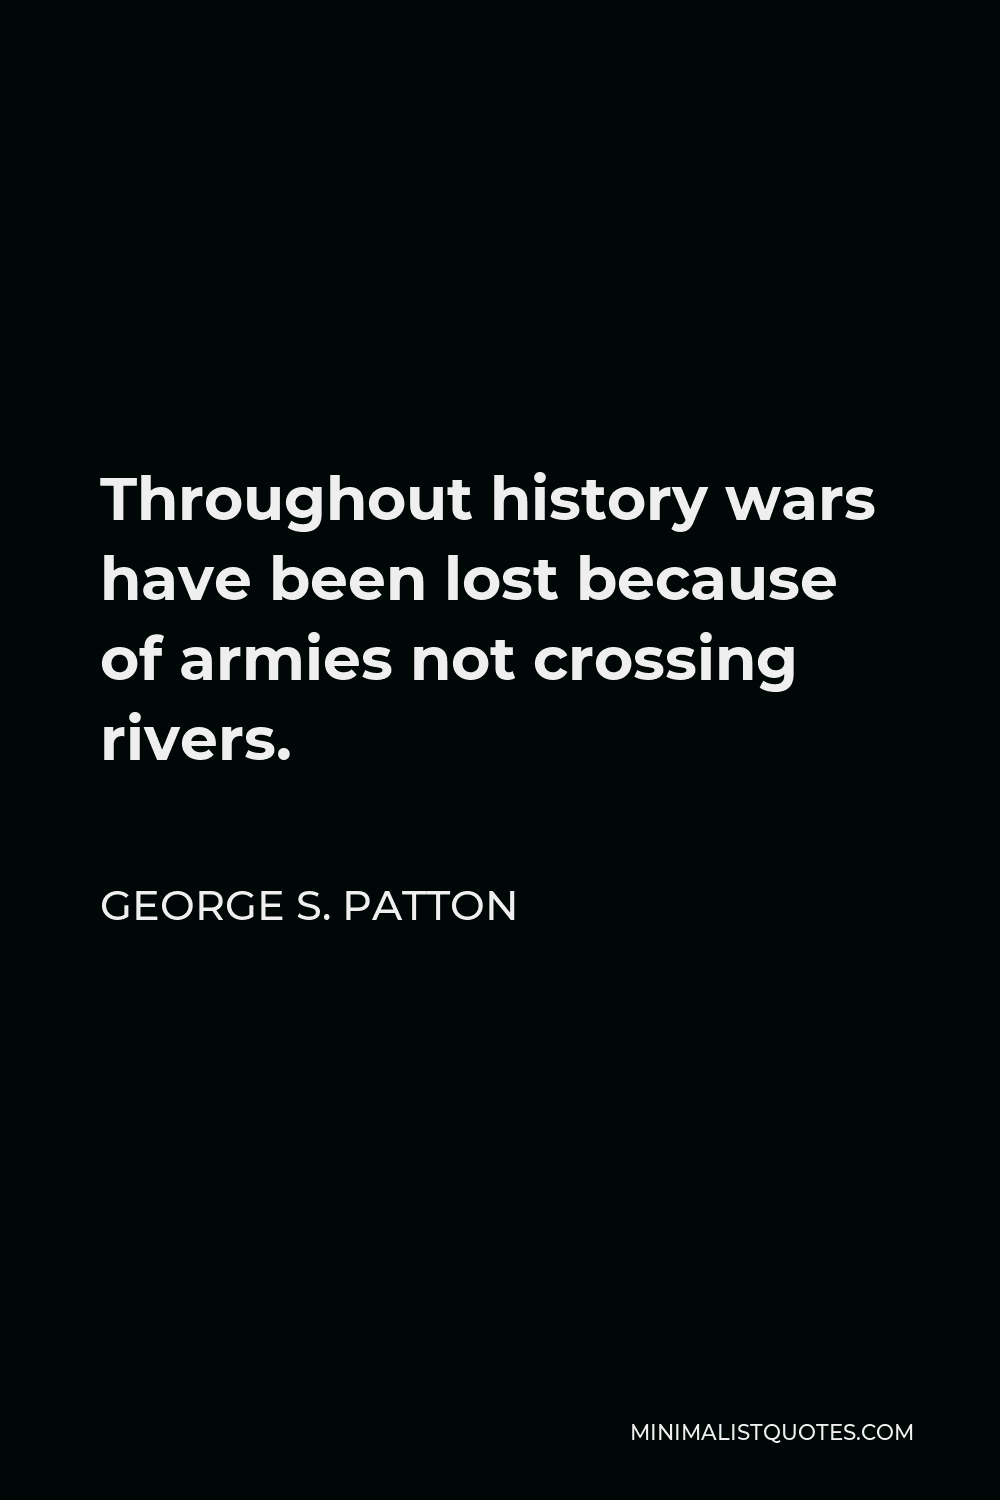 George S. Patton Quote - Throughout history wars have been lost because of armies not crossing rivers.